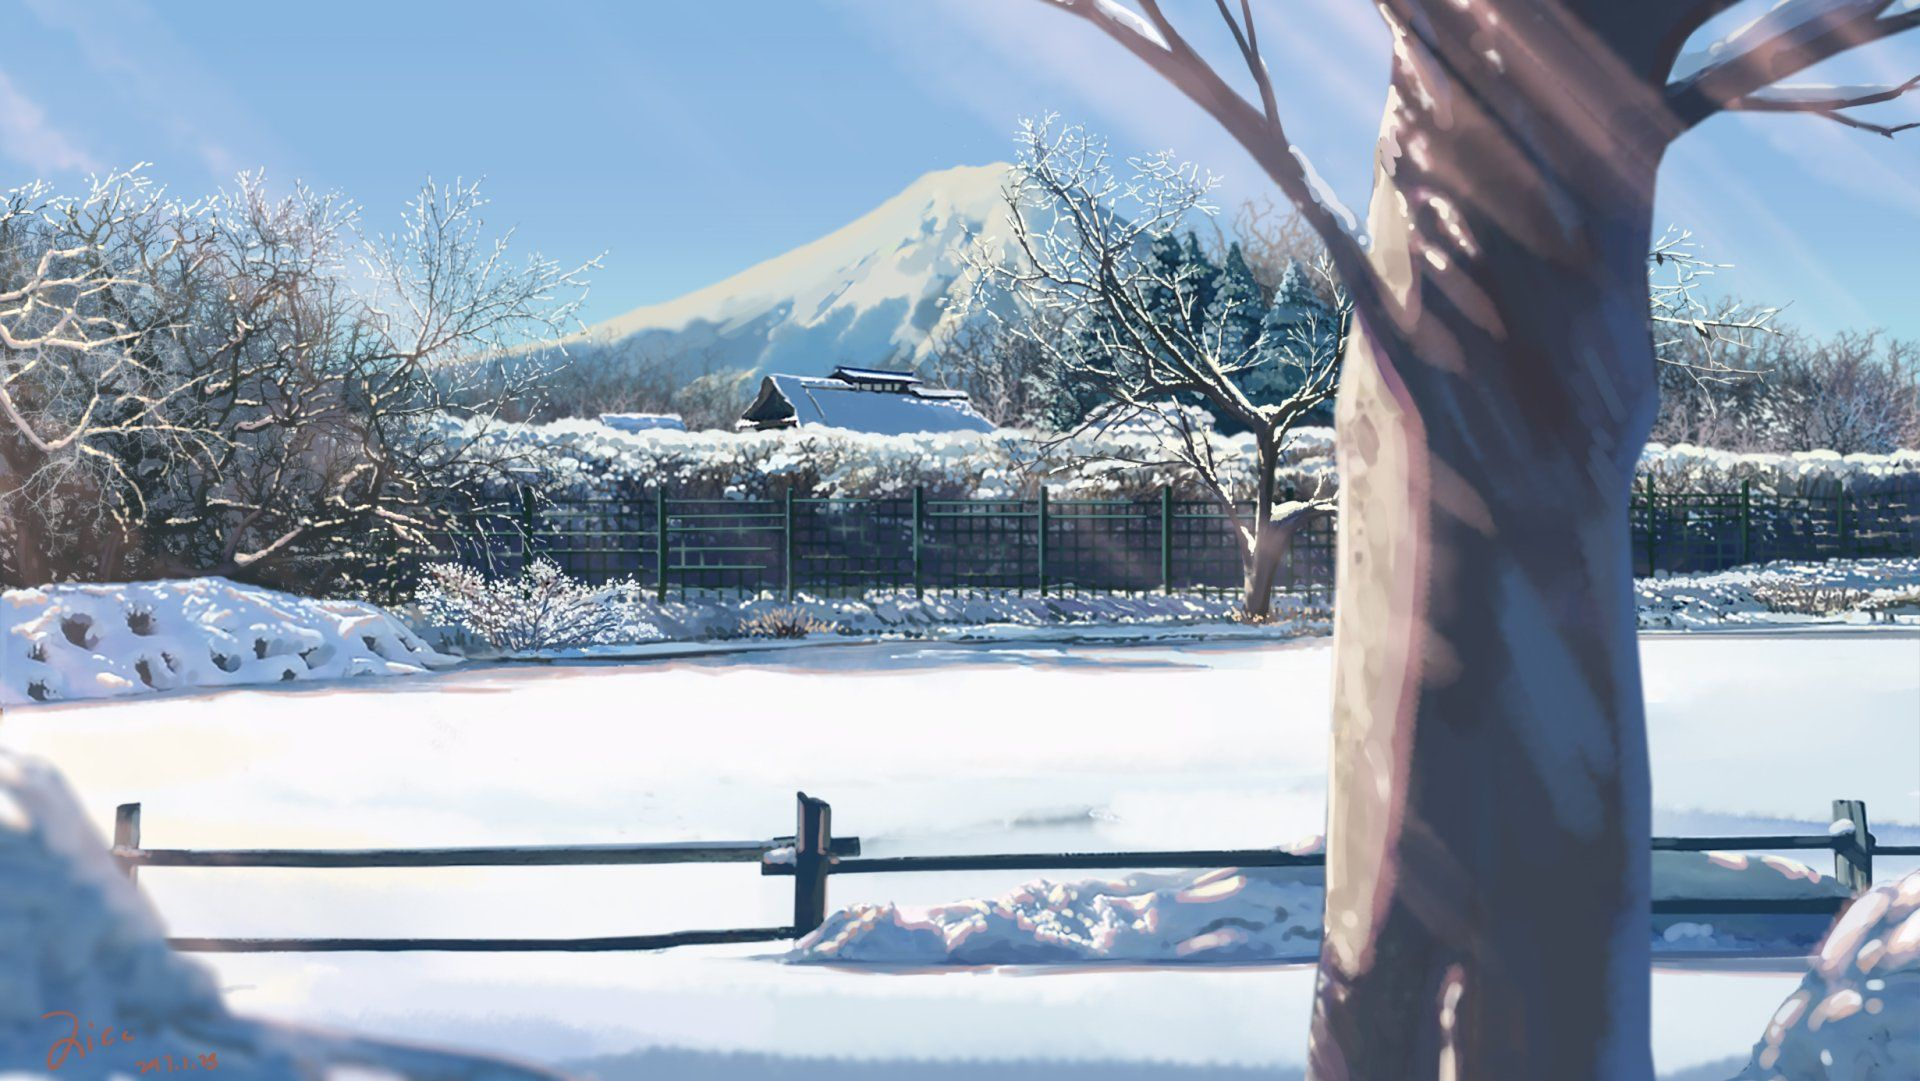 Background Image. Click pic to full HD winteranime